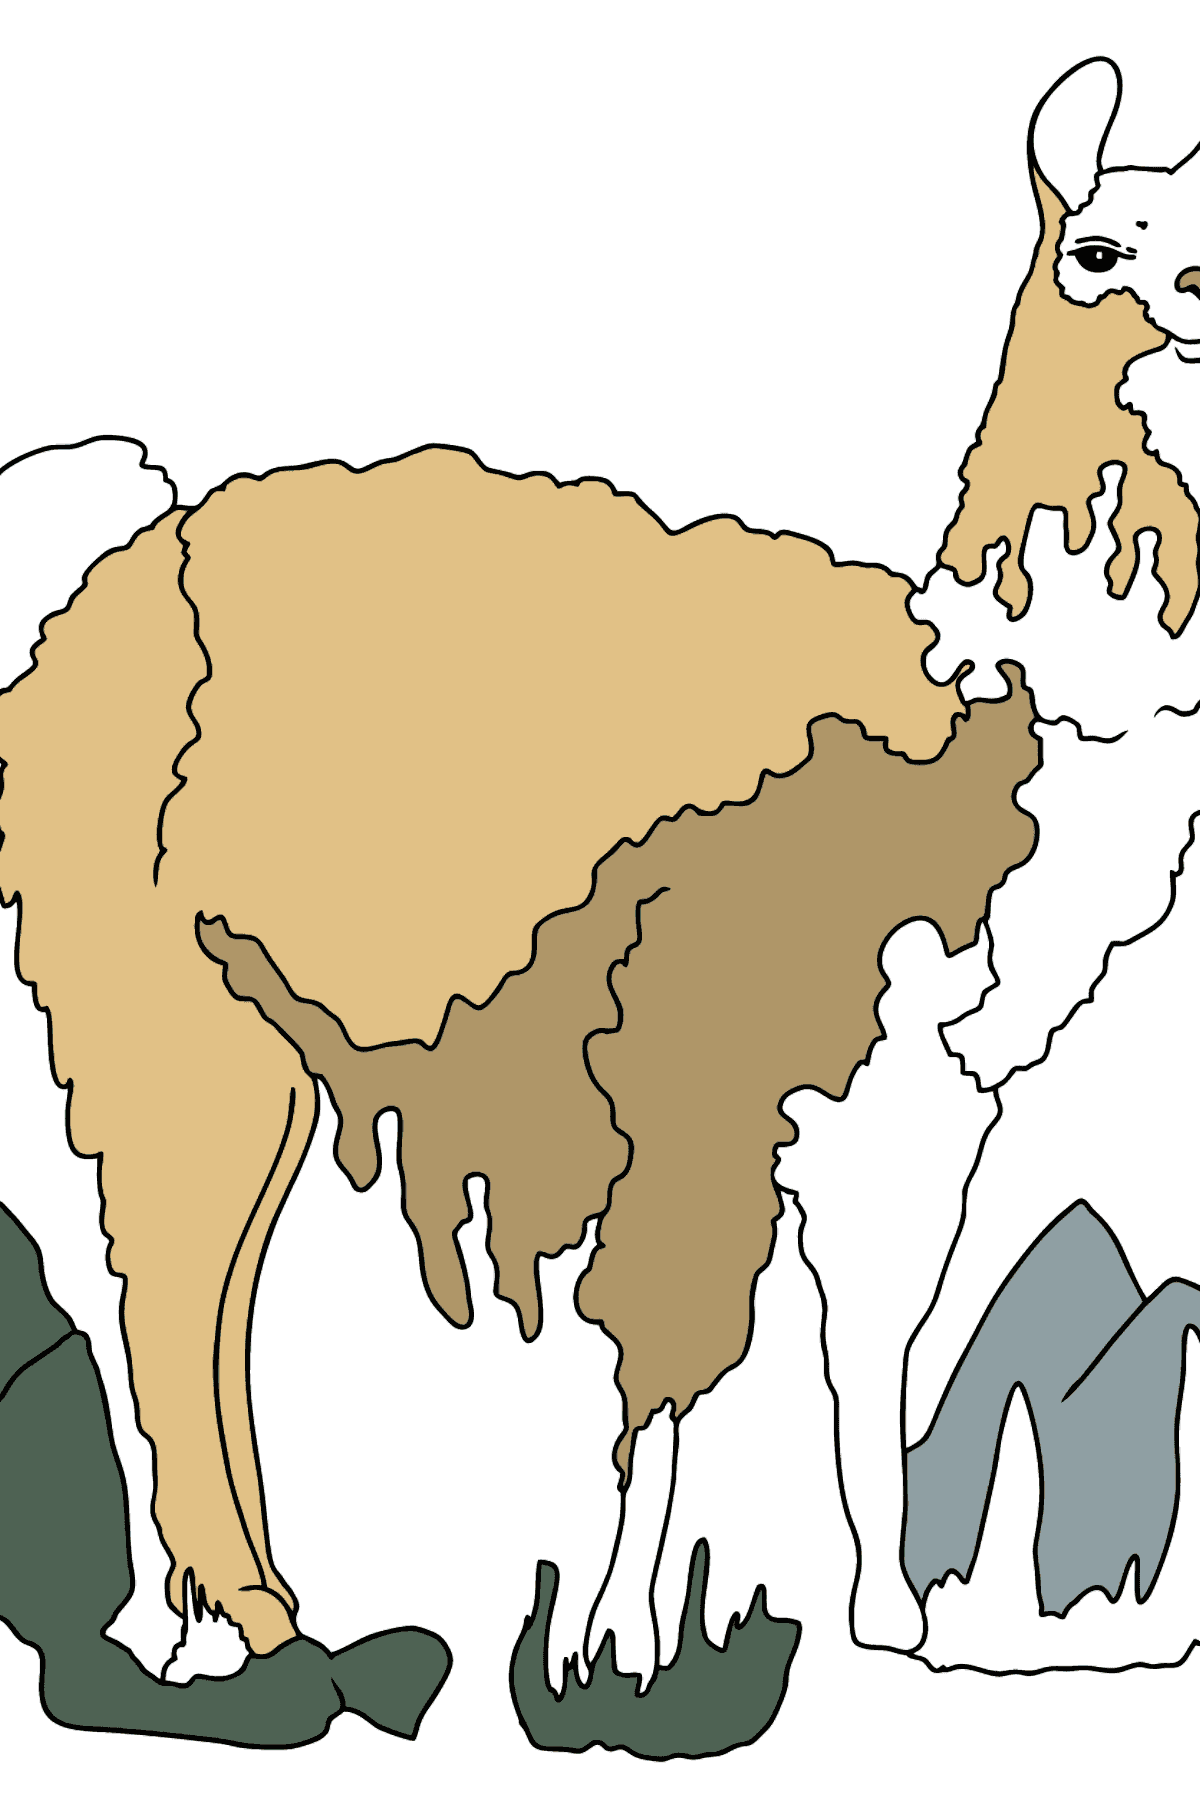 Coloring Page - A Lama is Inspecting the Area - Coloring Pages for Kids